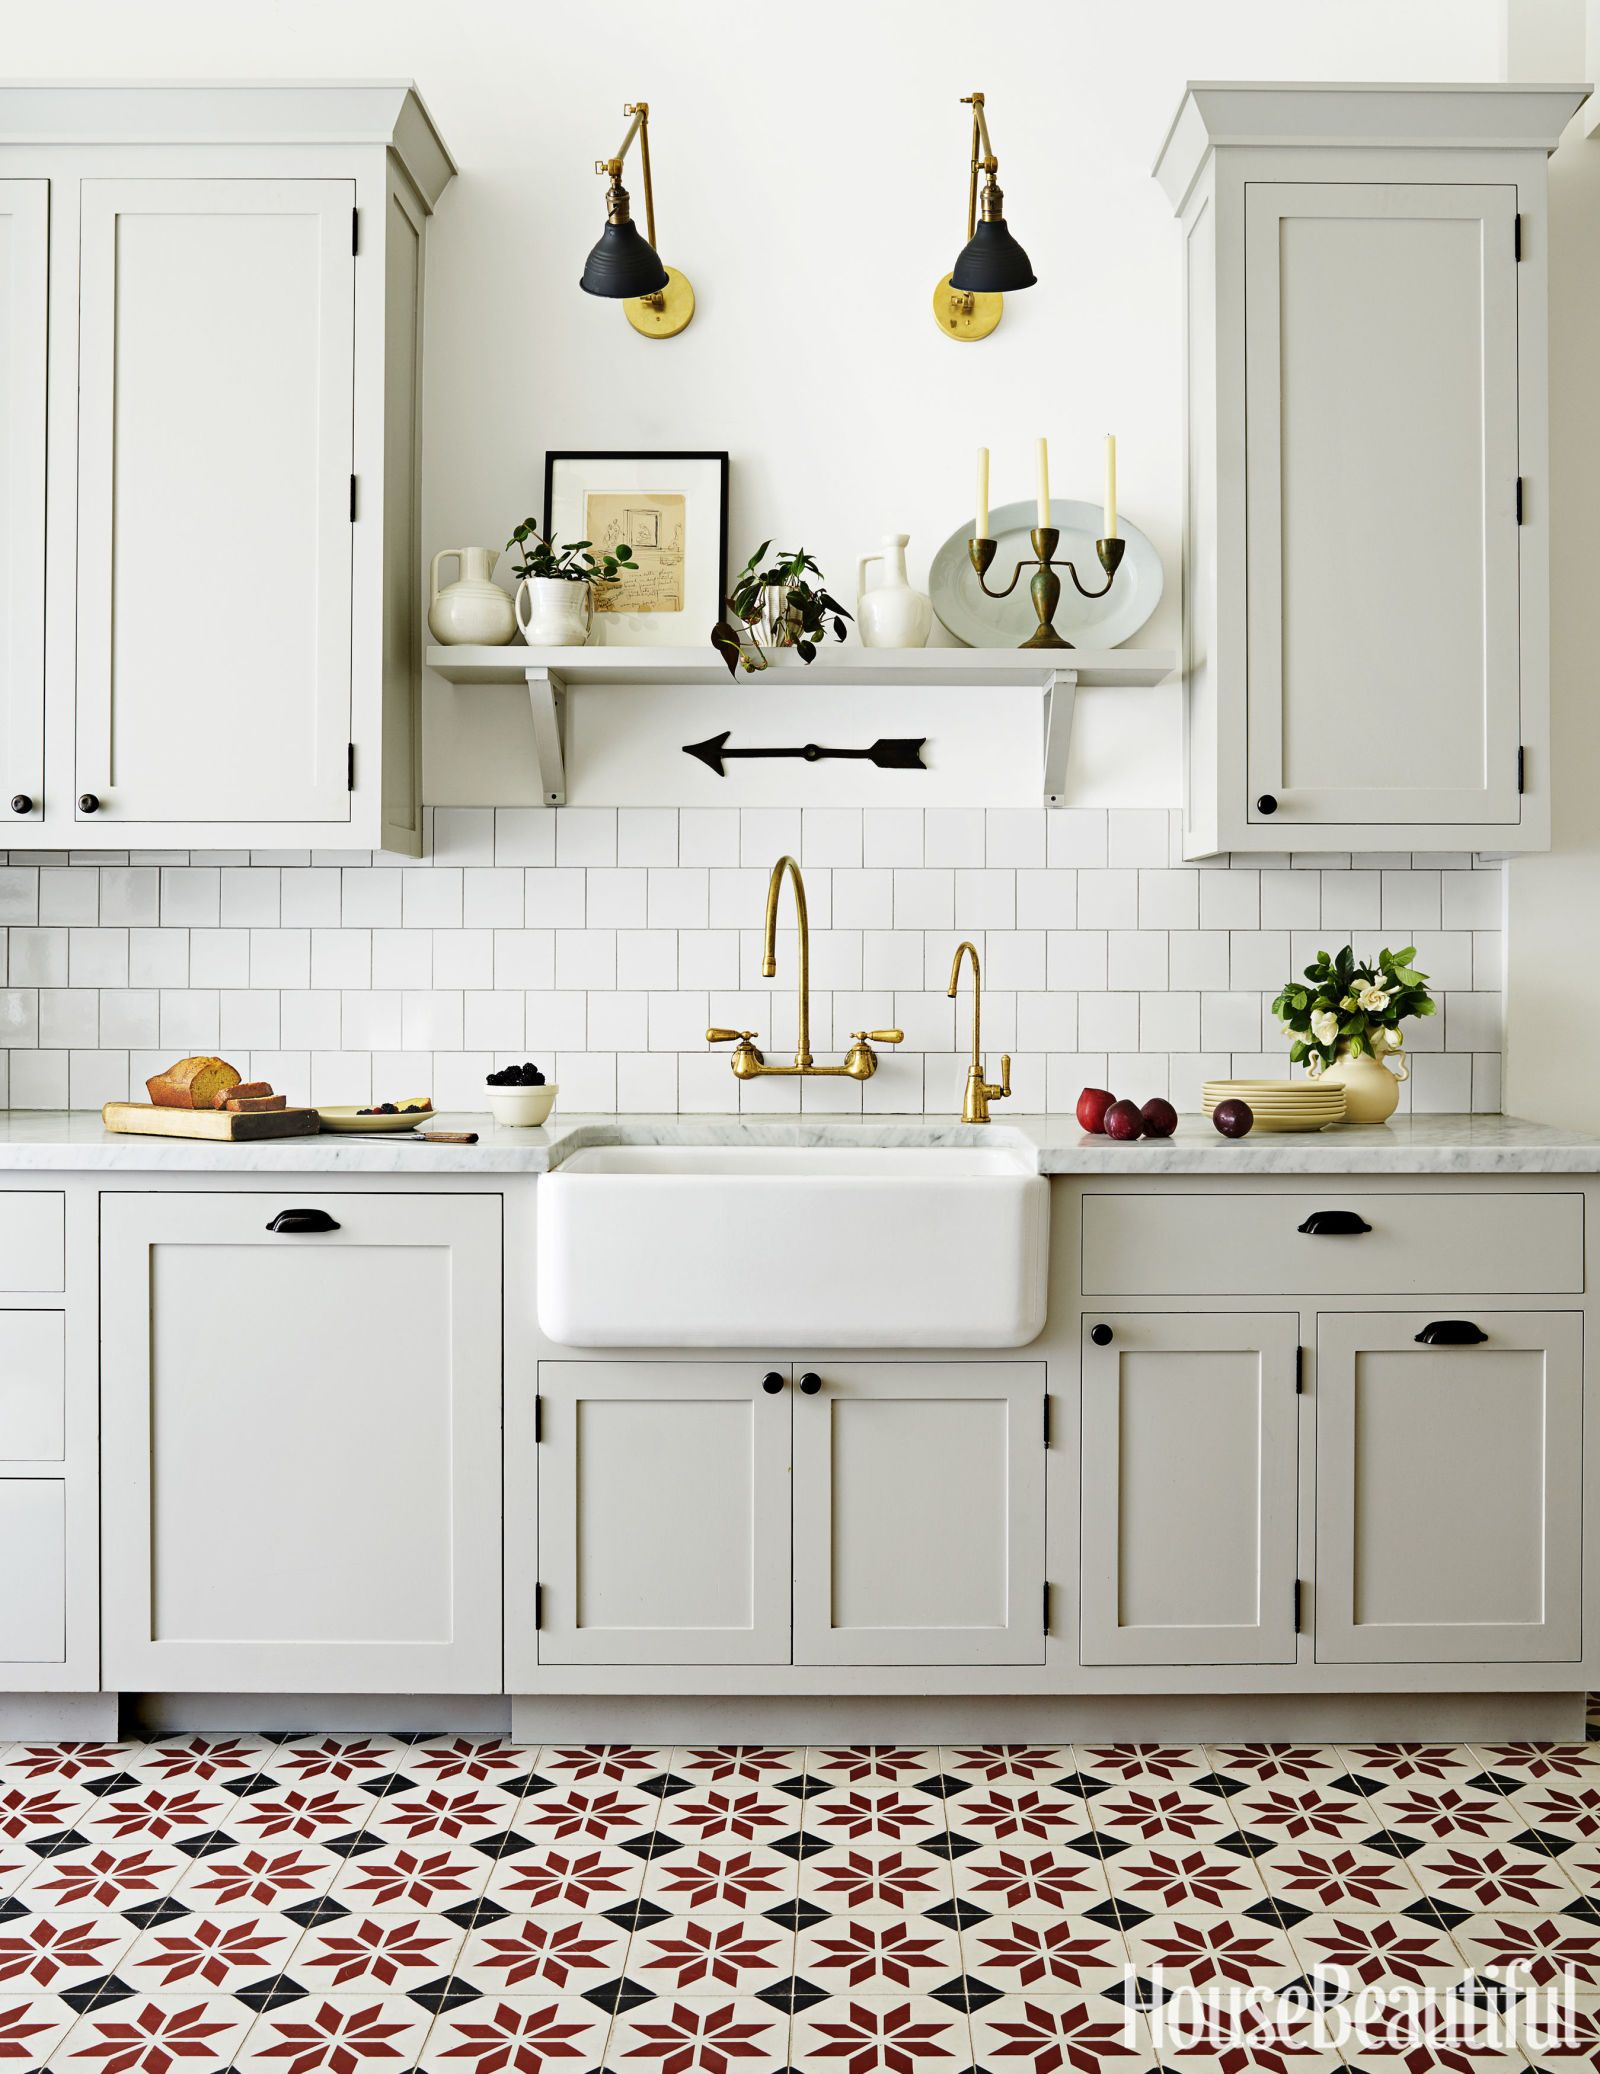 Gray Kitchen Floors Tour An Old World Kitchen With Some Seriously Surprising Floors